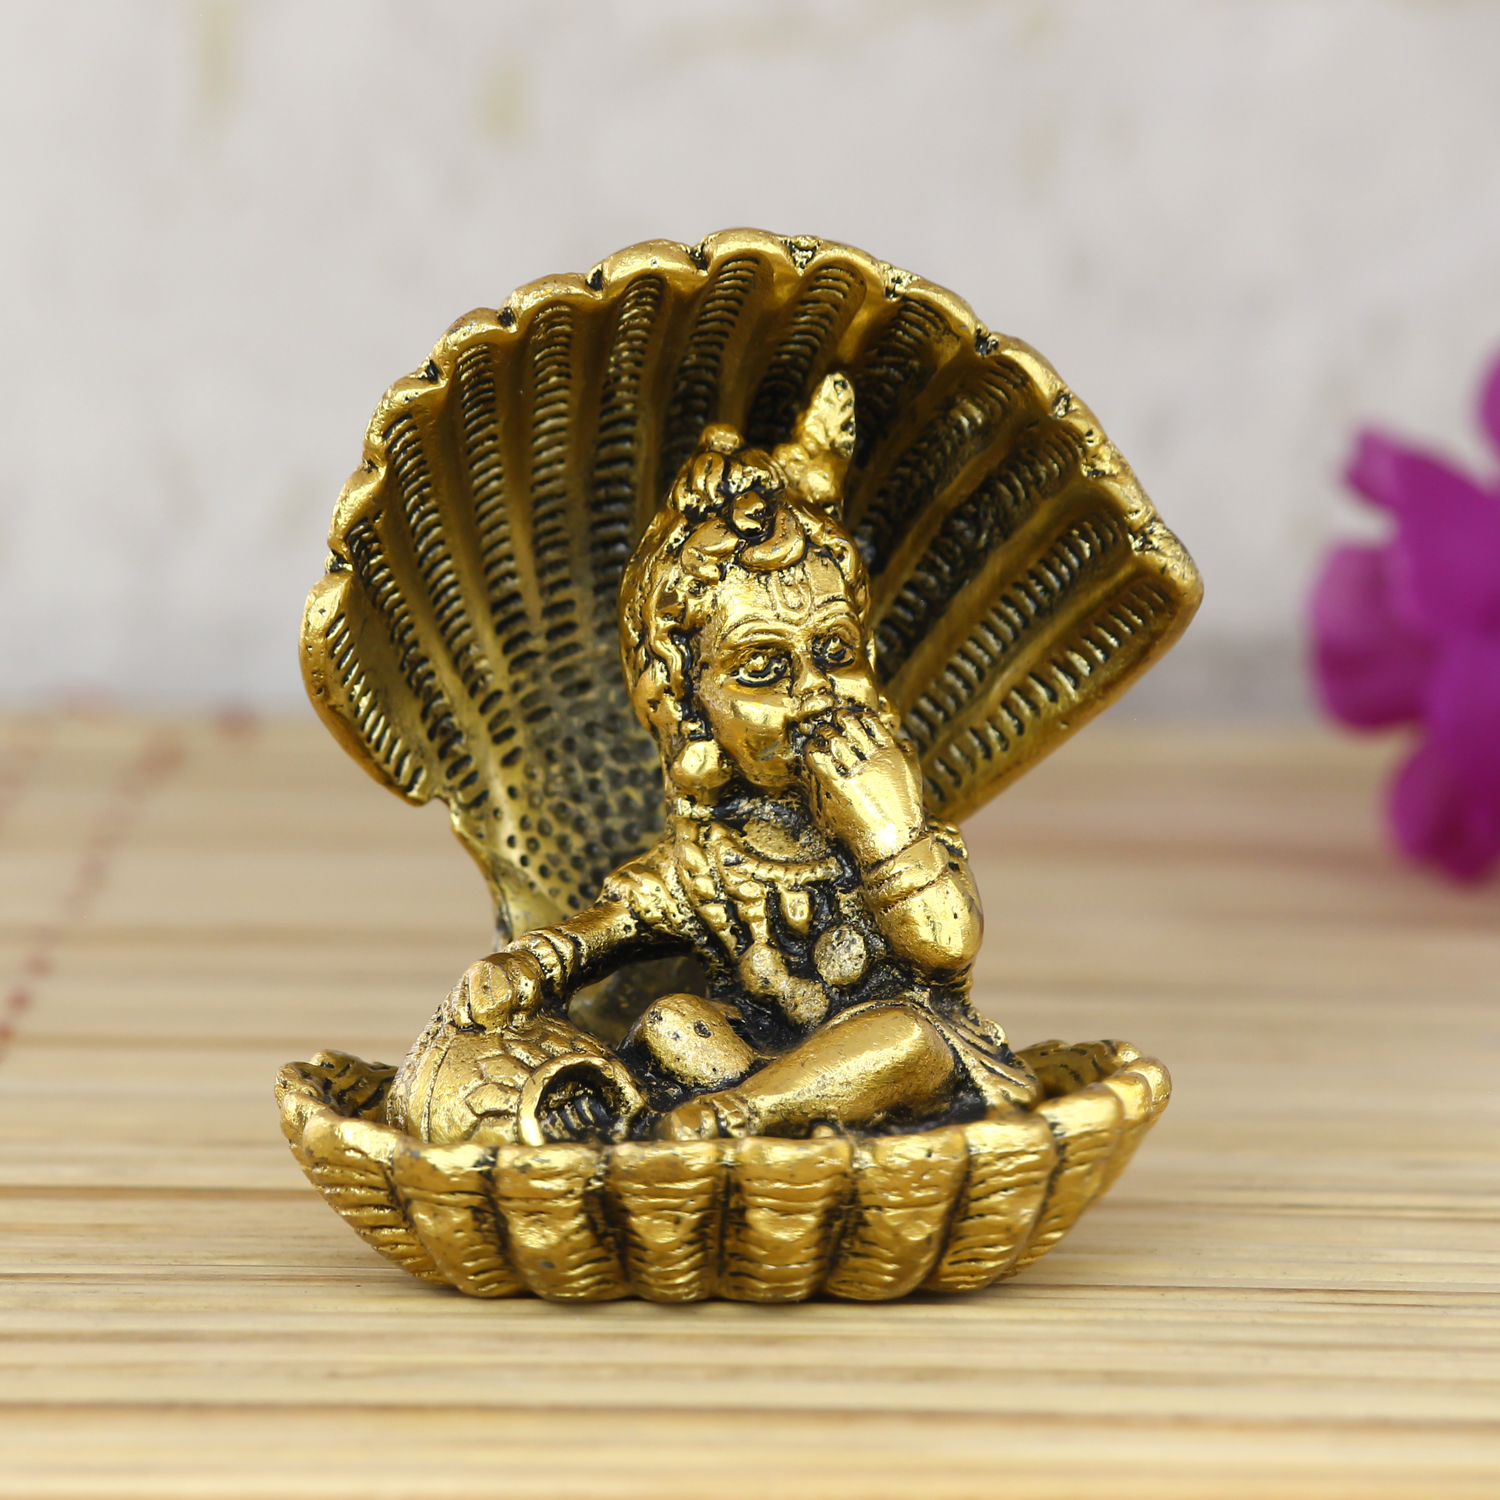 Golden Bal Gopal Krishna having Makhan Decorative Showpiece Indian Home Decor